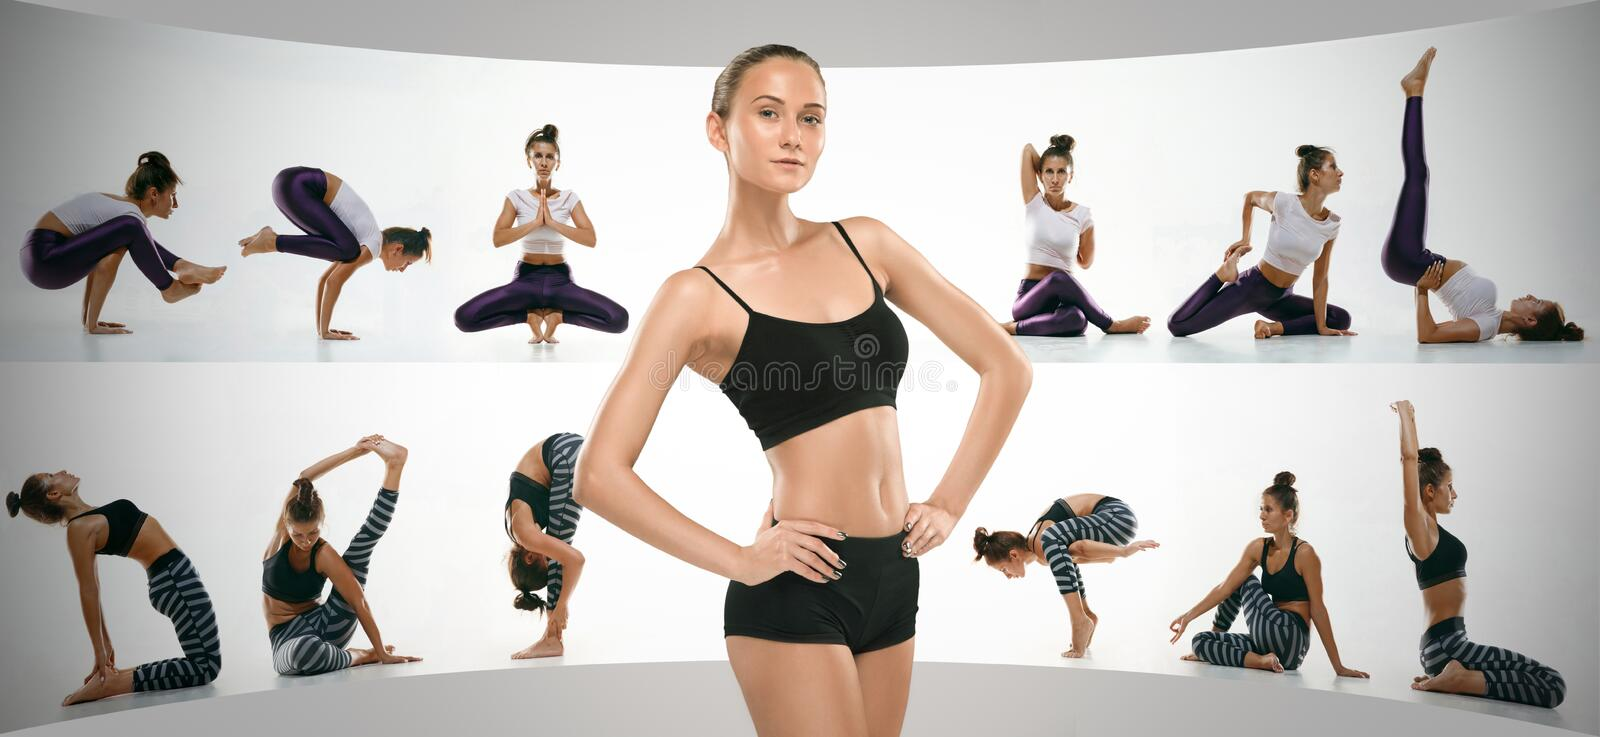 Sporty young woman doing yoga practice, creative collage stock image